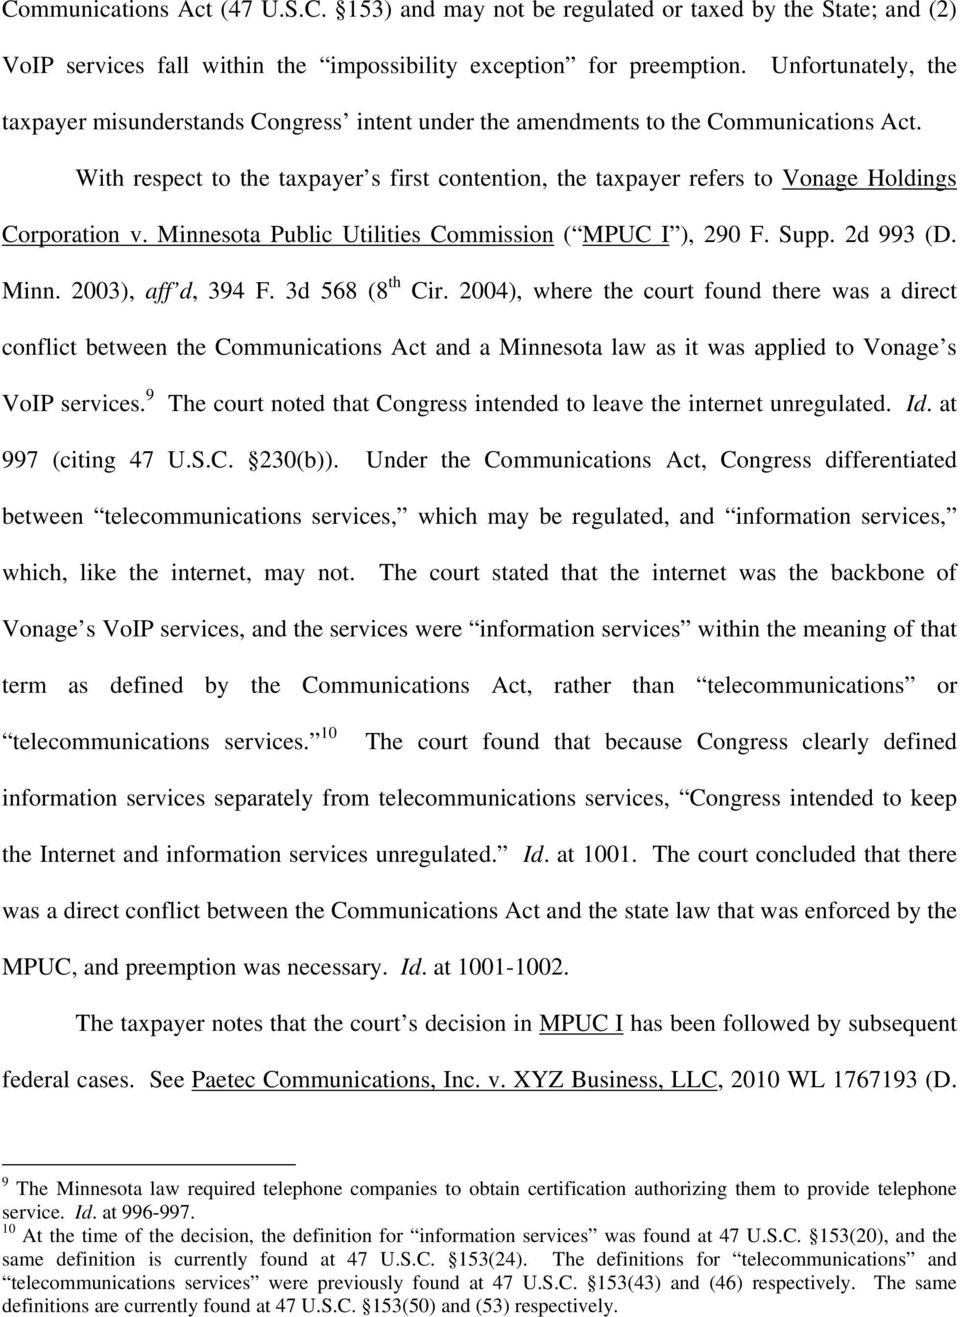 With respect to the taxpayer s first contention, the taxpayer refers to Vonage Holdings Corporation v. Minnesota Public Utilities Commission ( MPUC I ), 290 F. Supp. 2d 993 (D. Minn. 2003), aff d, 394 F.